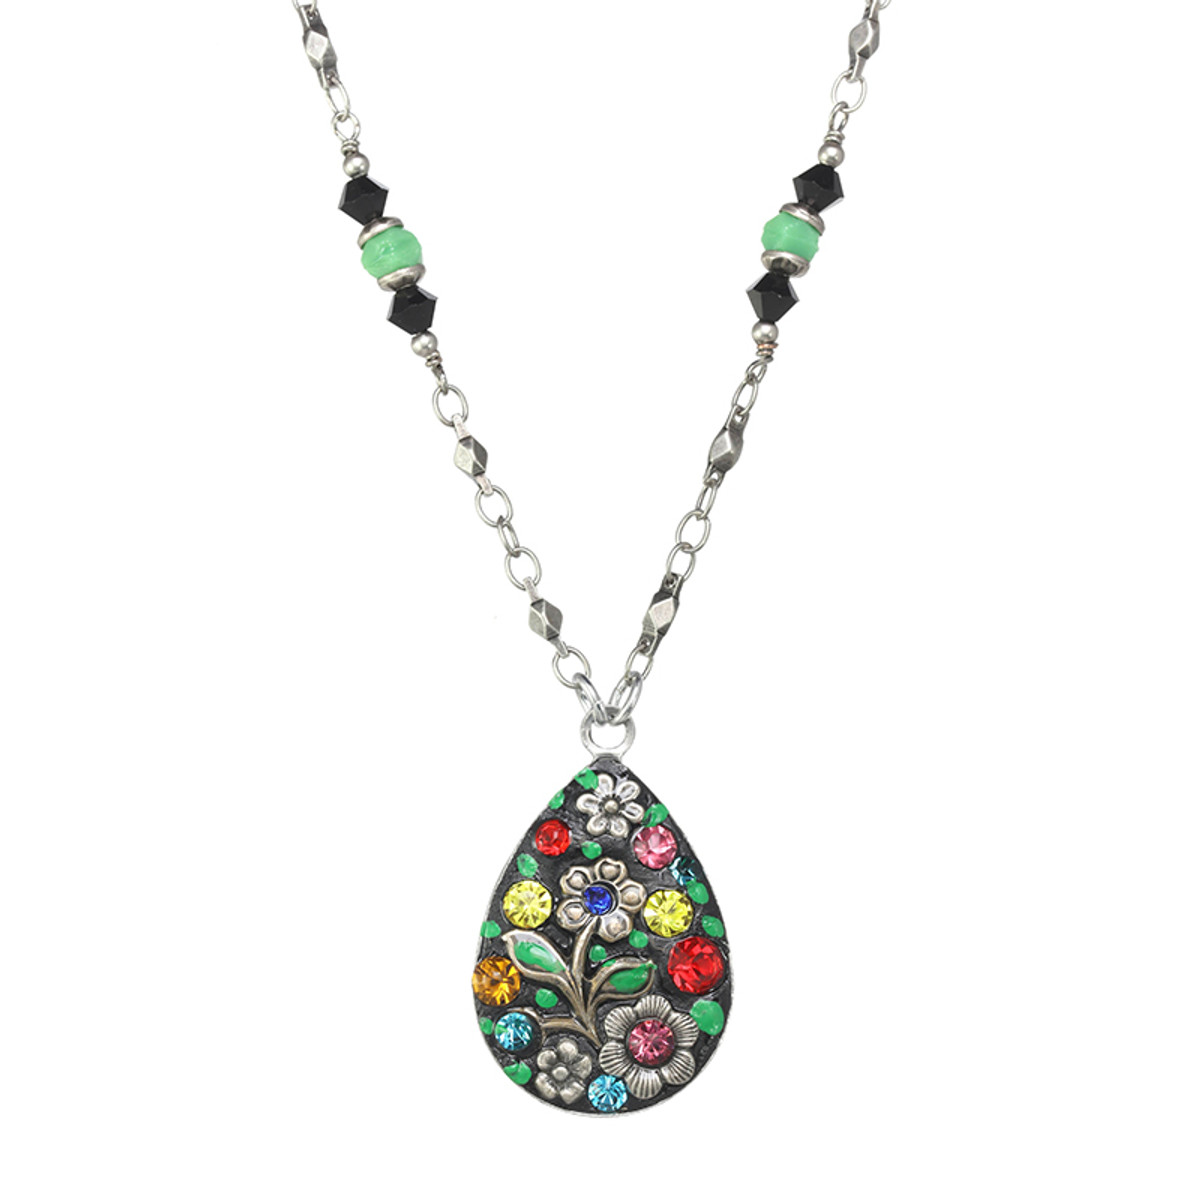 Michal Golan Midsummer Drop Necklace